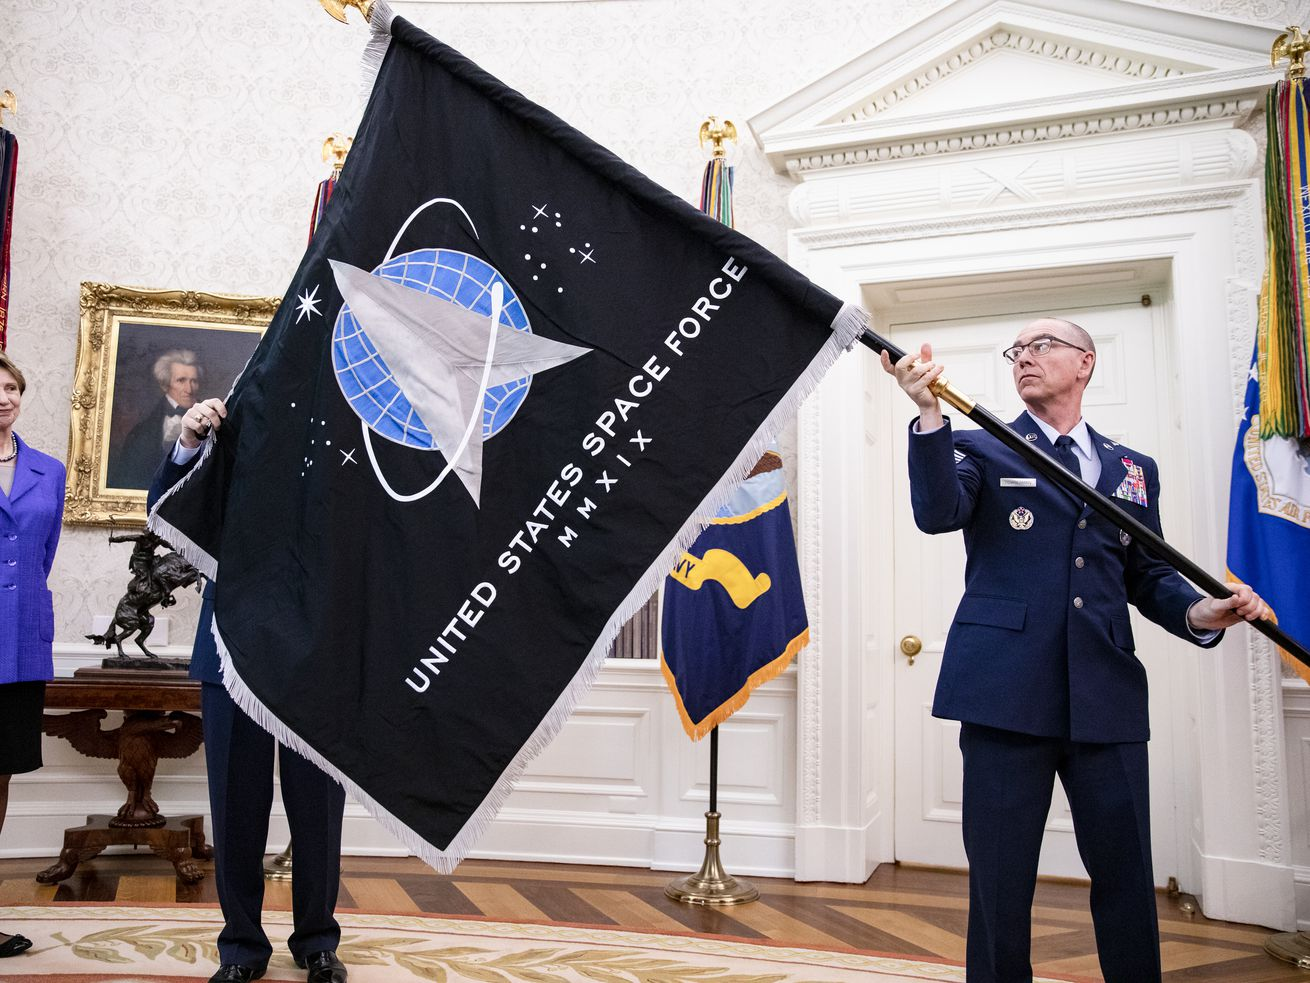 A military officer holds a US Space Force flag in the Oval Office.